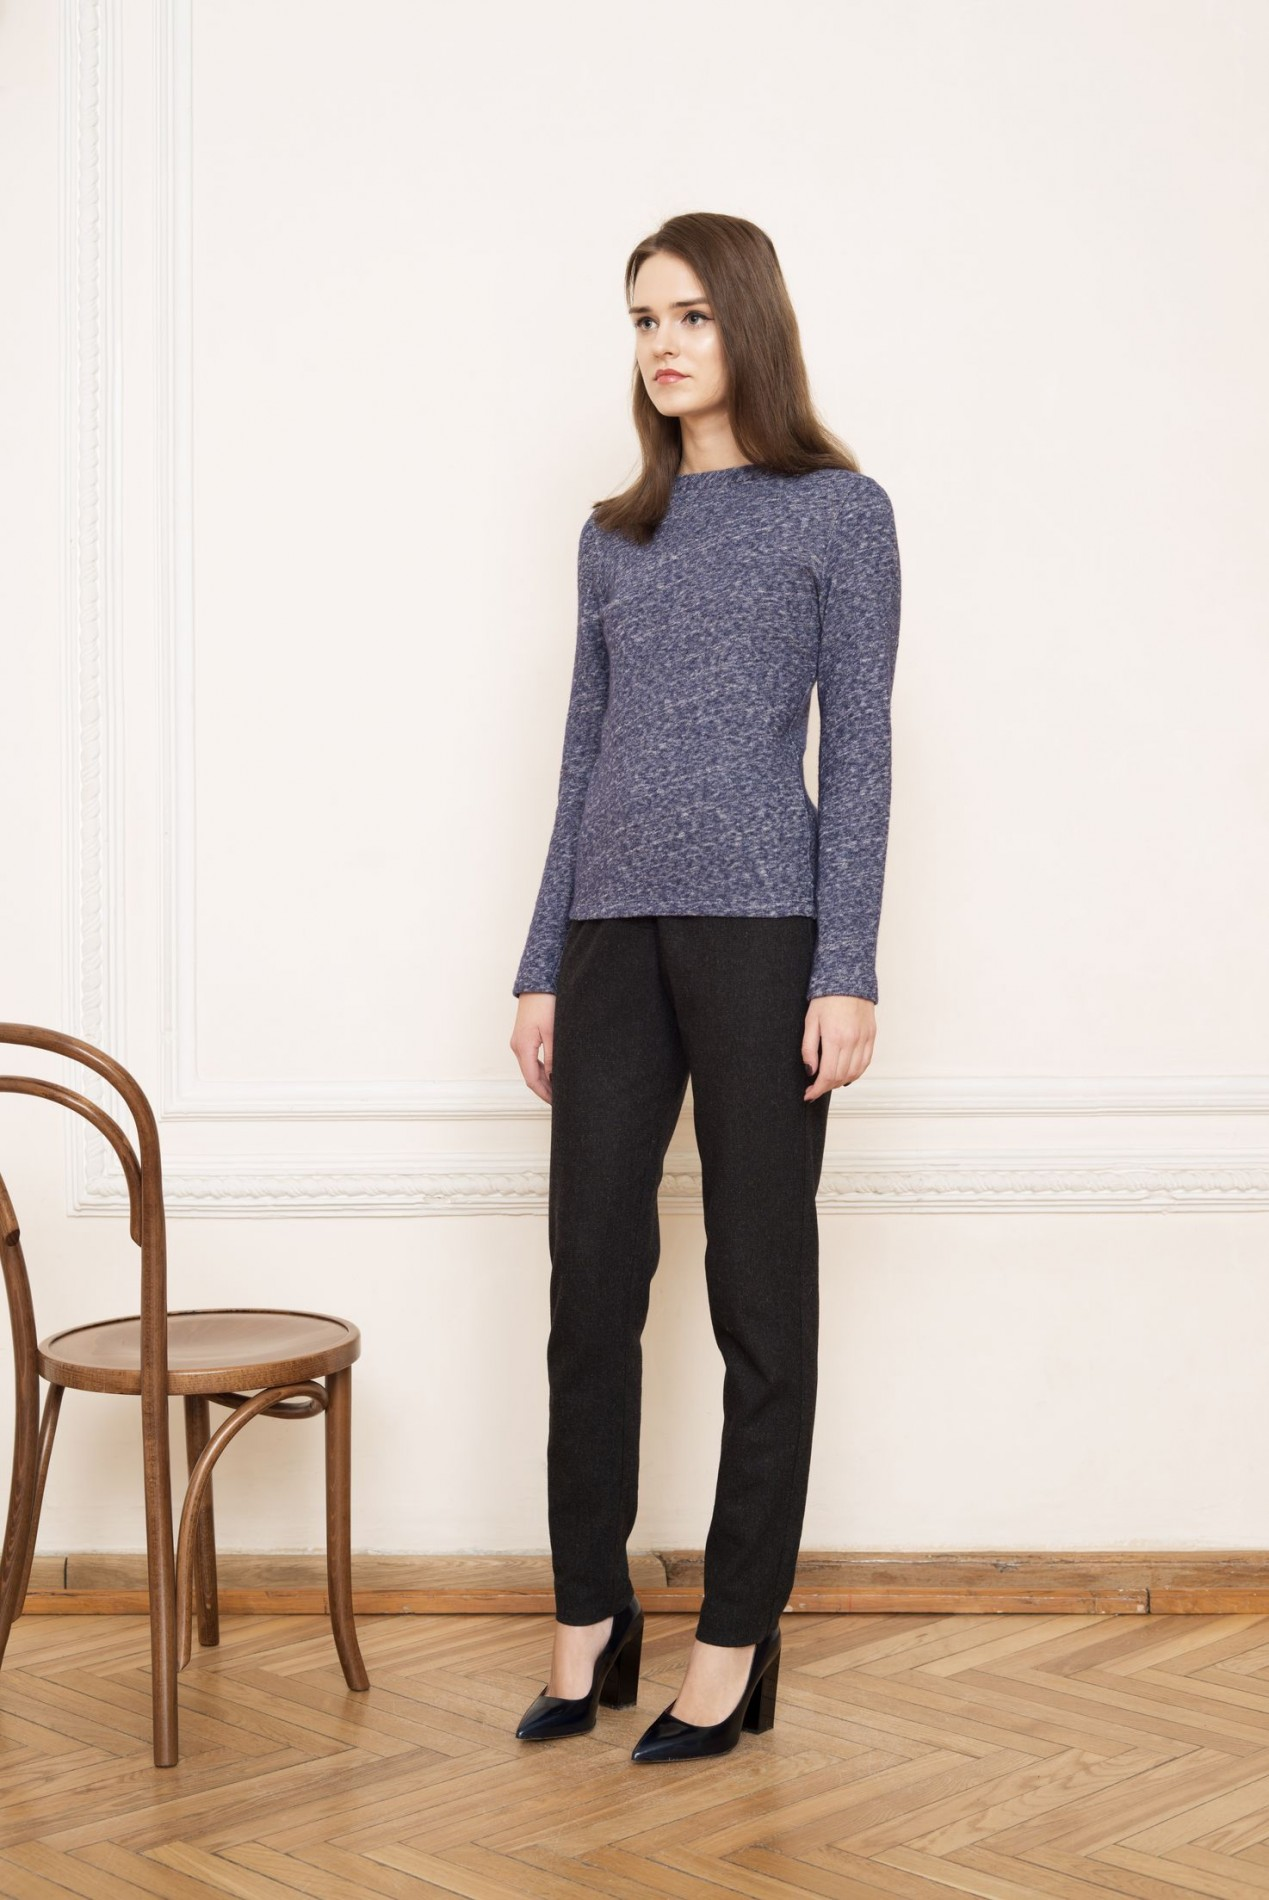 ELBRUS Knitted Blouse and ALPS Slim Trousers